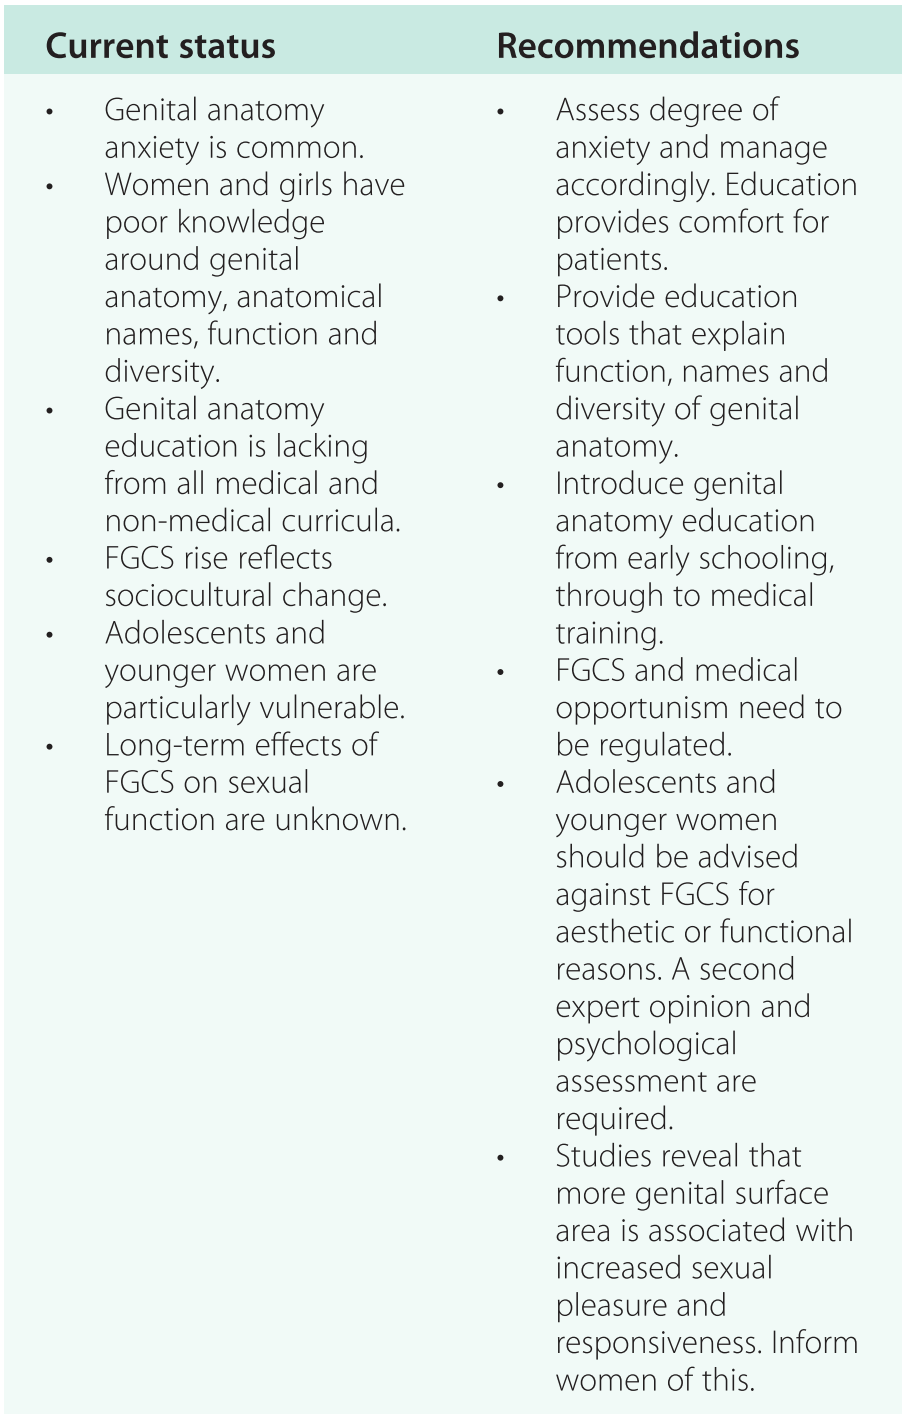 Female Genital Cosmetic Surgery and the Role of the General